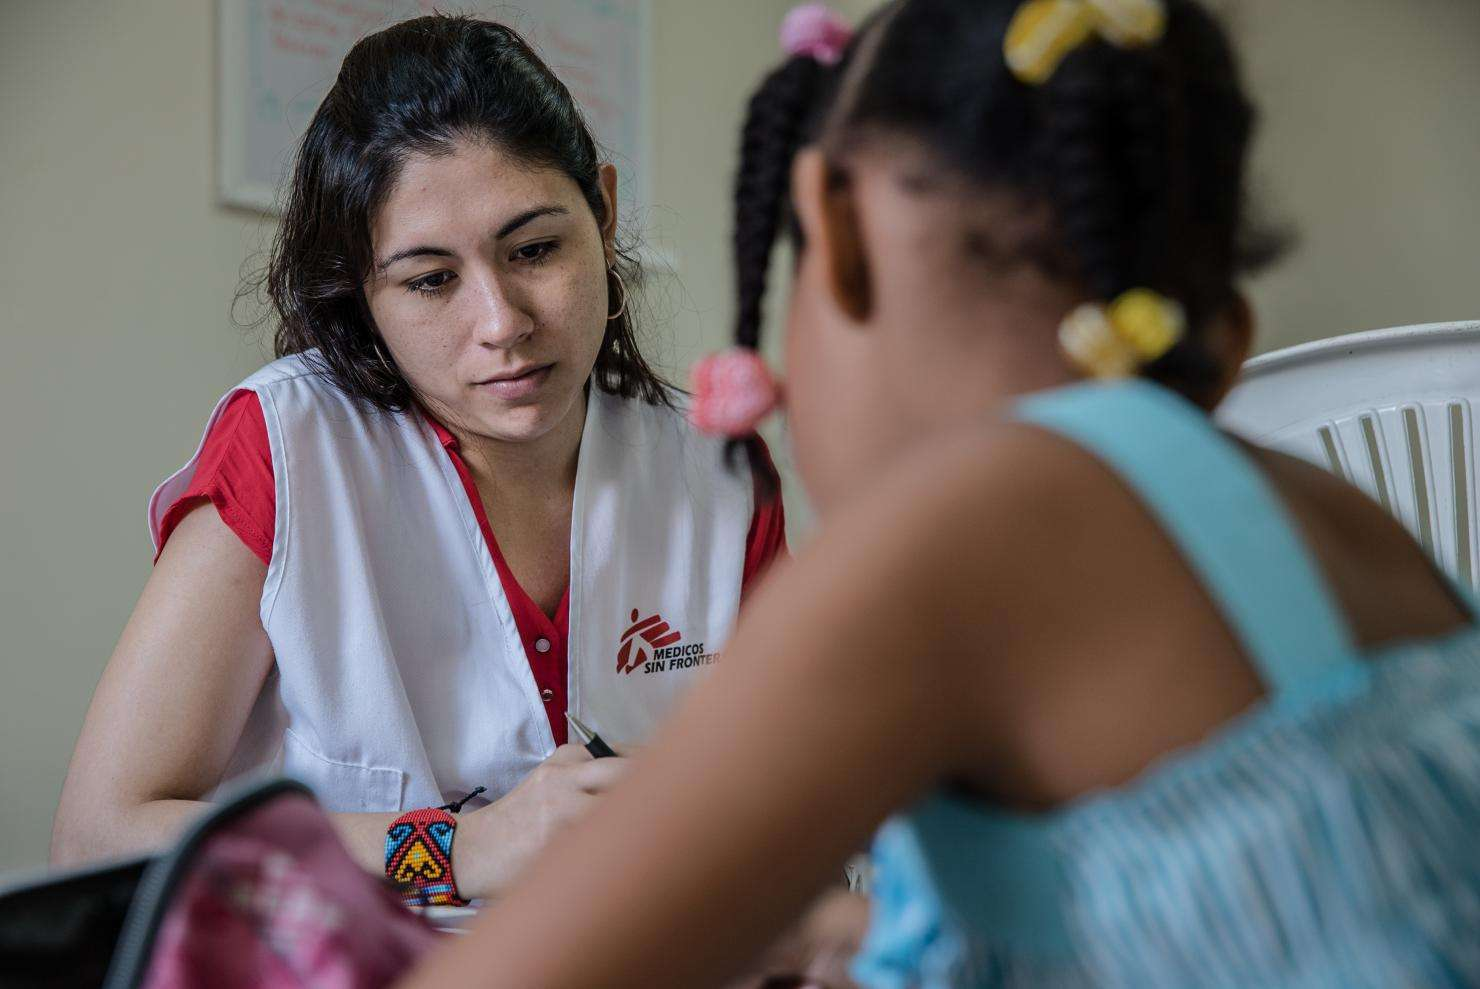 Colombia: People Continue to Suffer from Violence Despite Peace Deal